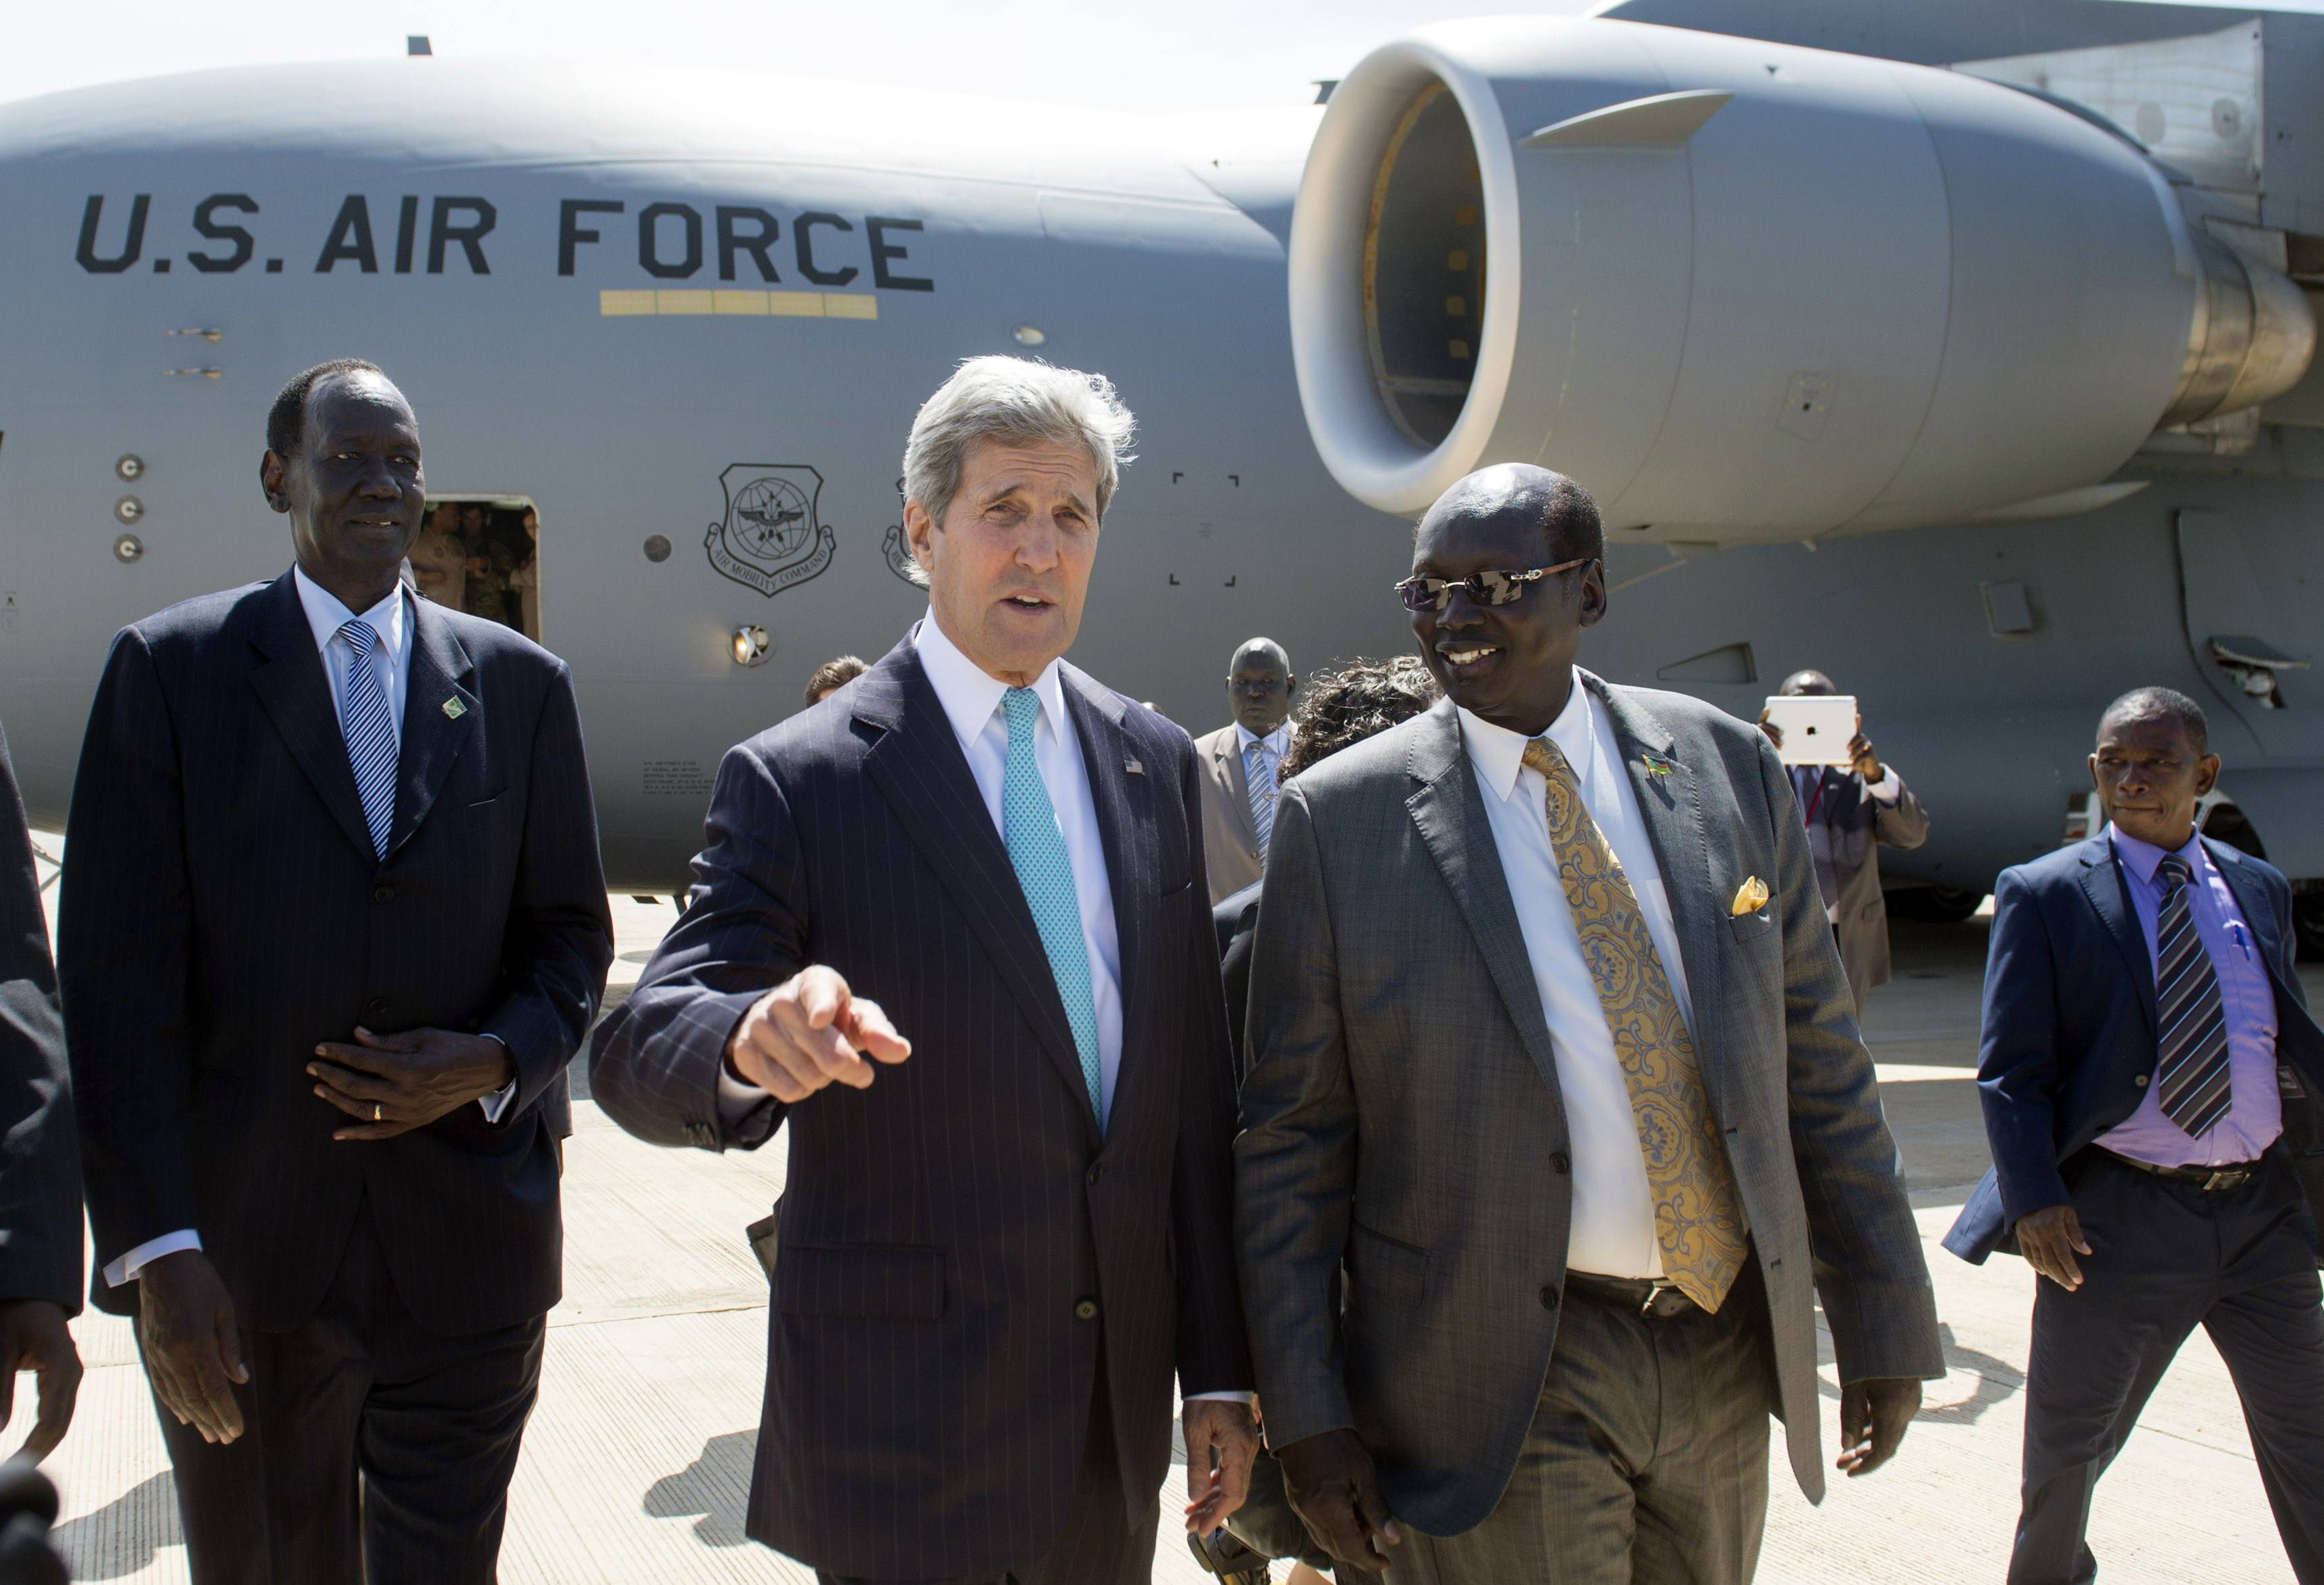 U.S. Secretary of State John Kerry, center, arrives aboard a U.S. military airplane at Juba International Airport in Juba, South Sudan, Friday, May 2, 2014. Kerry is urging South Sudan's warring government and rebel leaders to uphold a monthslong promise to embrace a cease-fire or risk the specter of genocide through continued ethnic killings.